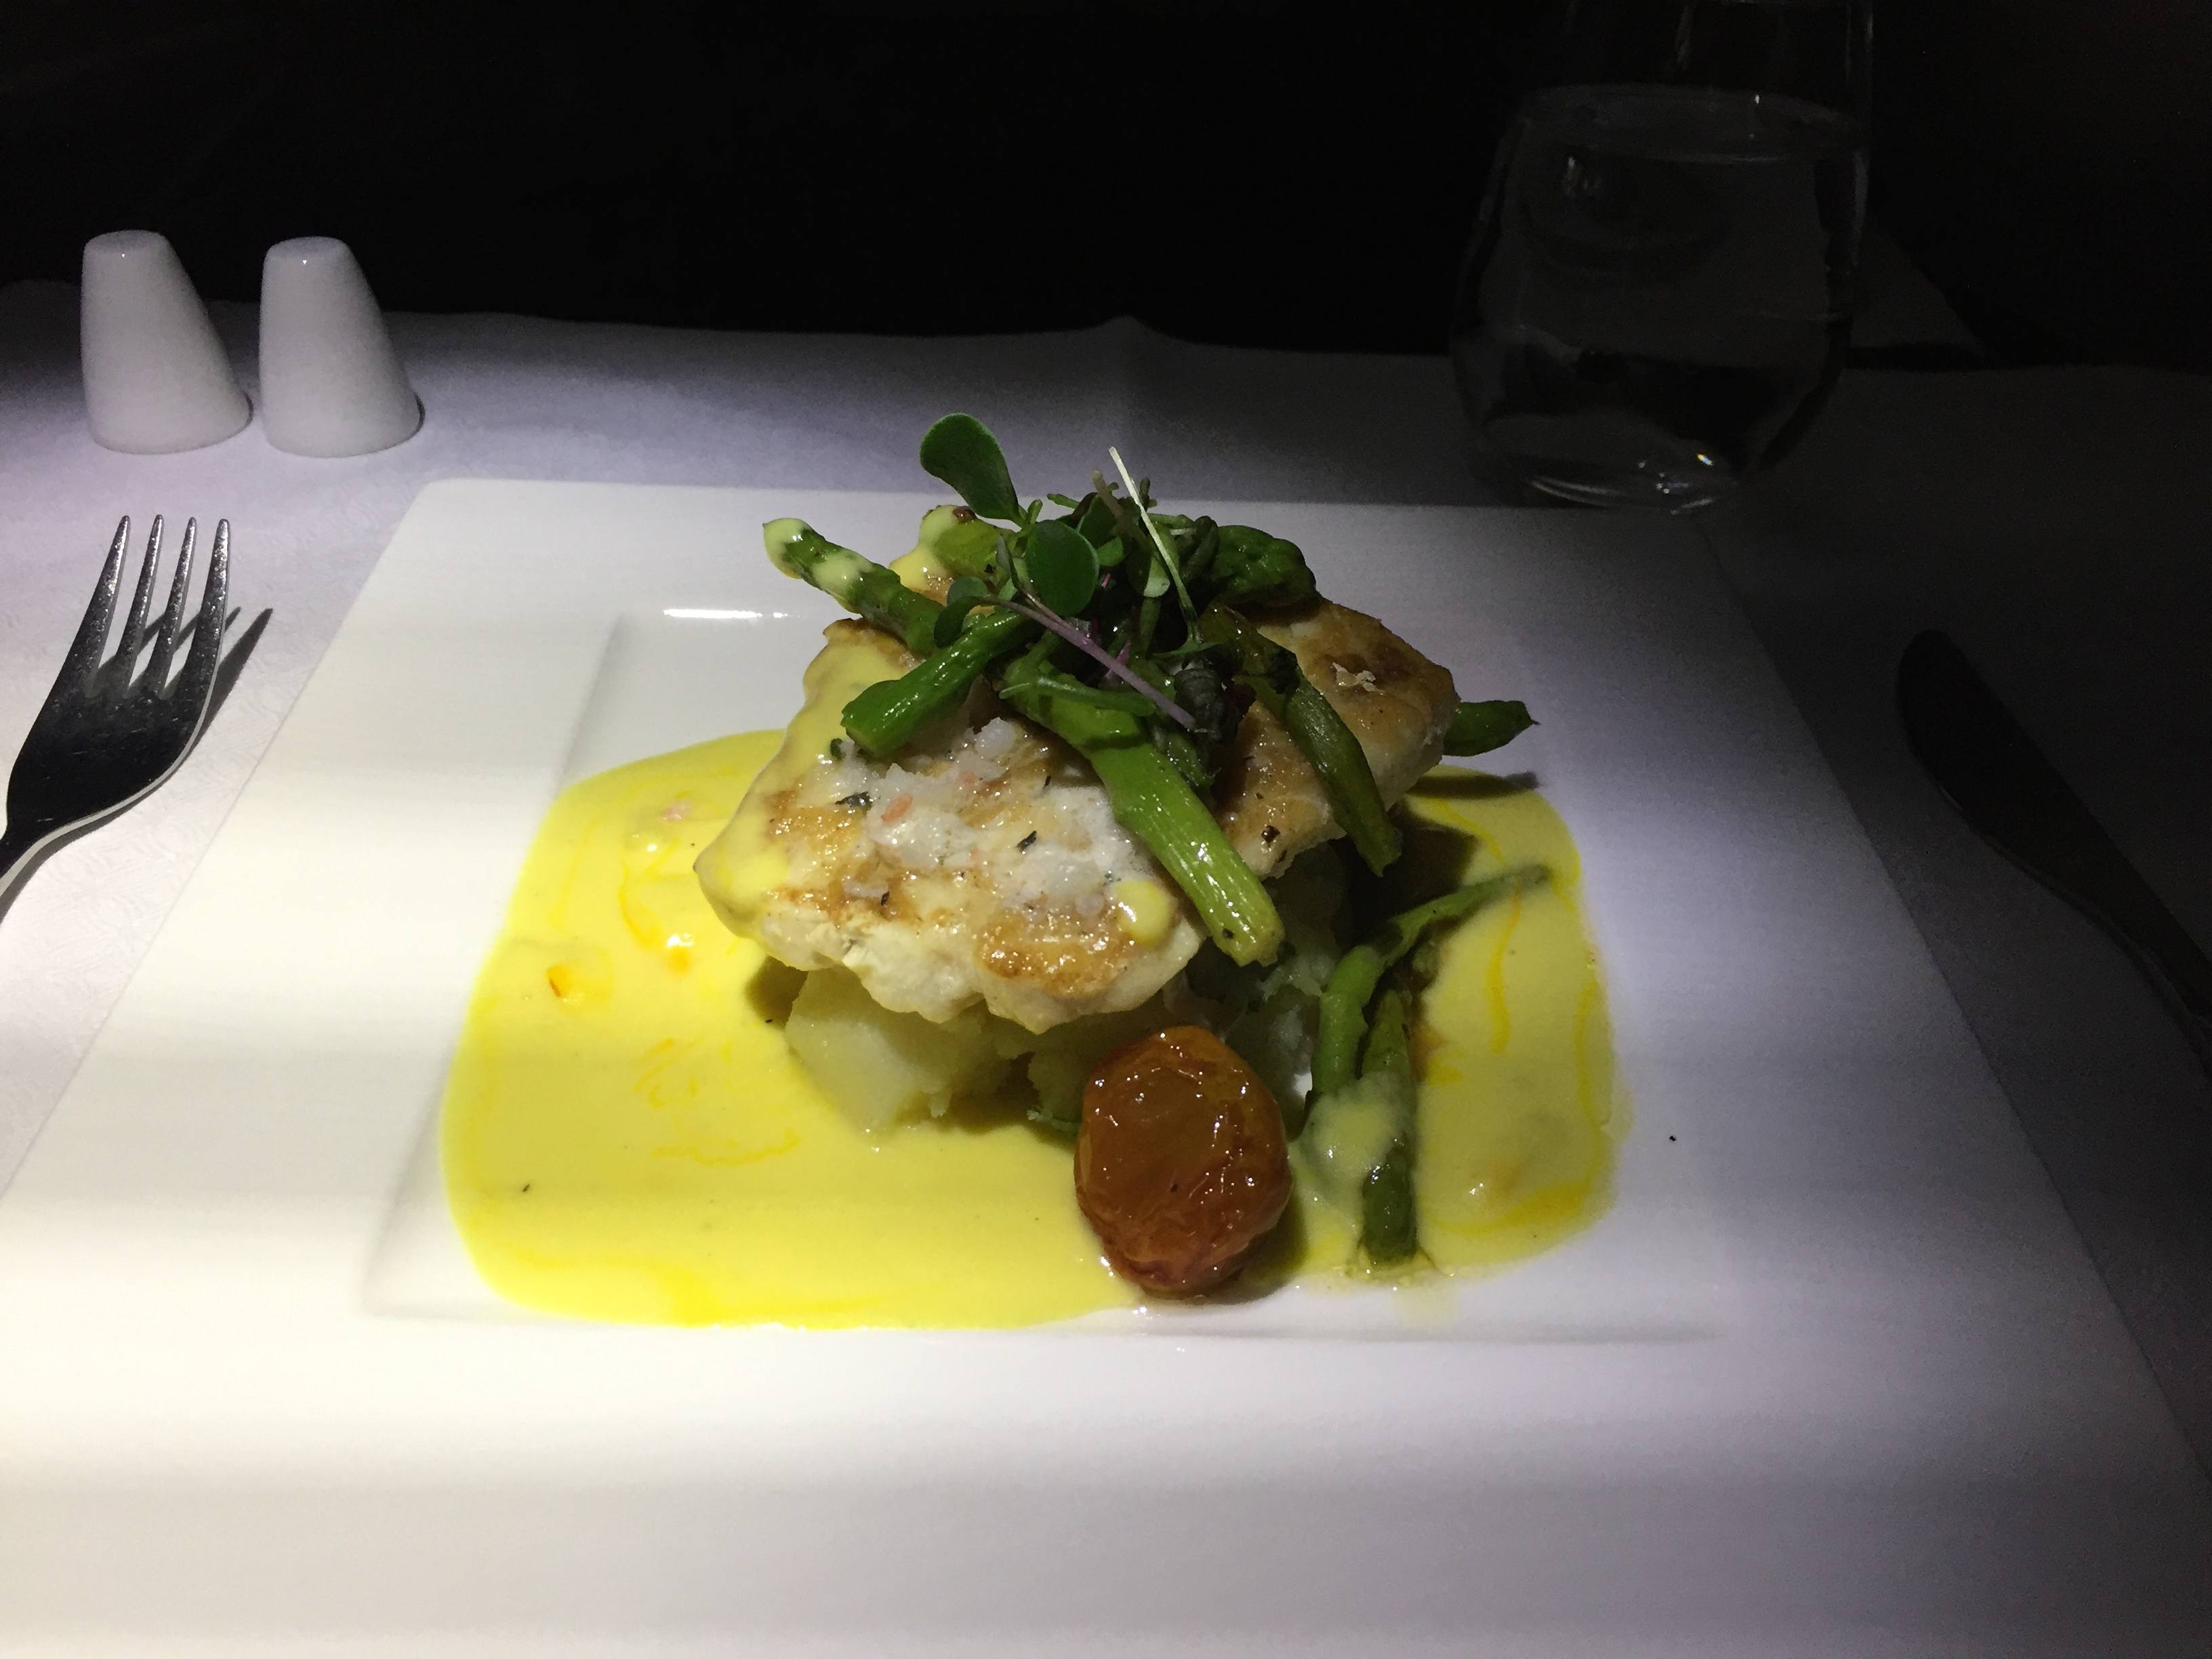 Qatar Airways Business Class main course: red snaper